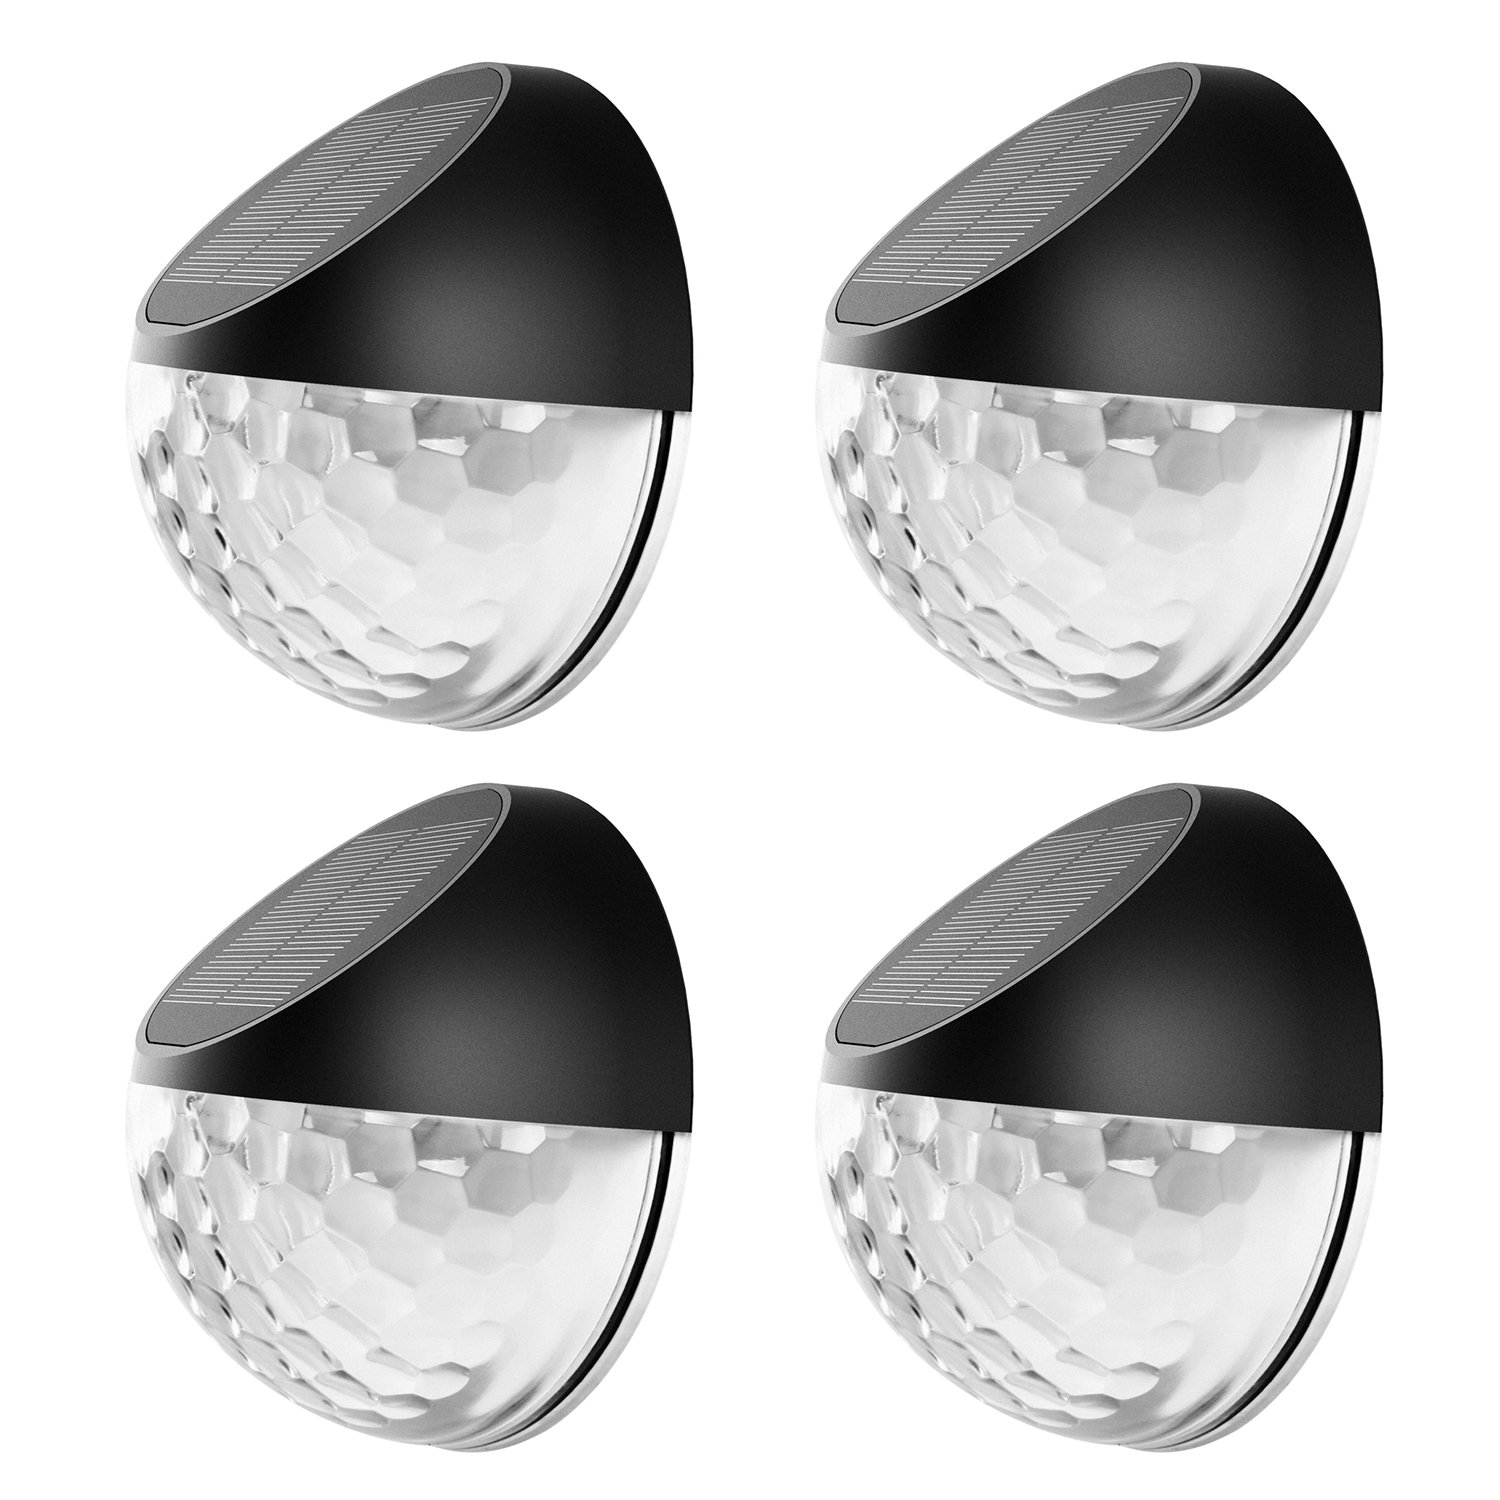 Solar Power Fence Lights, Exulight Decorative Garden Post Light, Outdoor Sensor Deck Lighting, Wireless Waterproof Wall Lamp with Auto on/off Night Dawn for Patio Walkway Driveway Yard Stairs (4 pack)